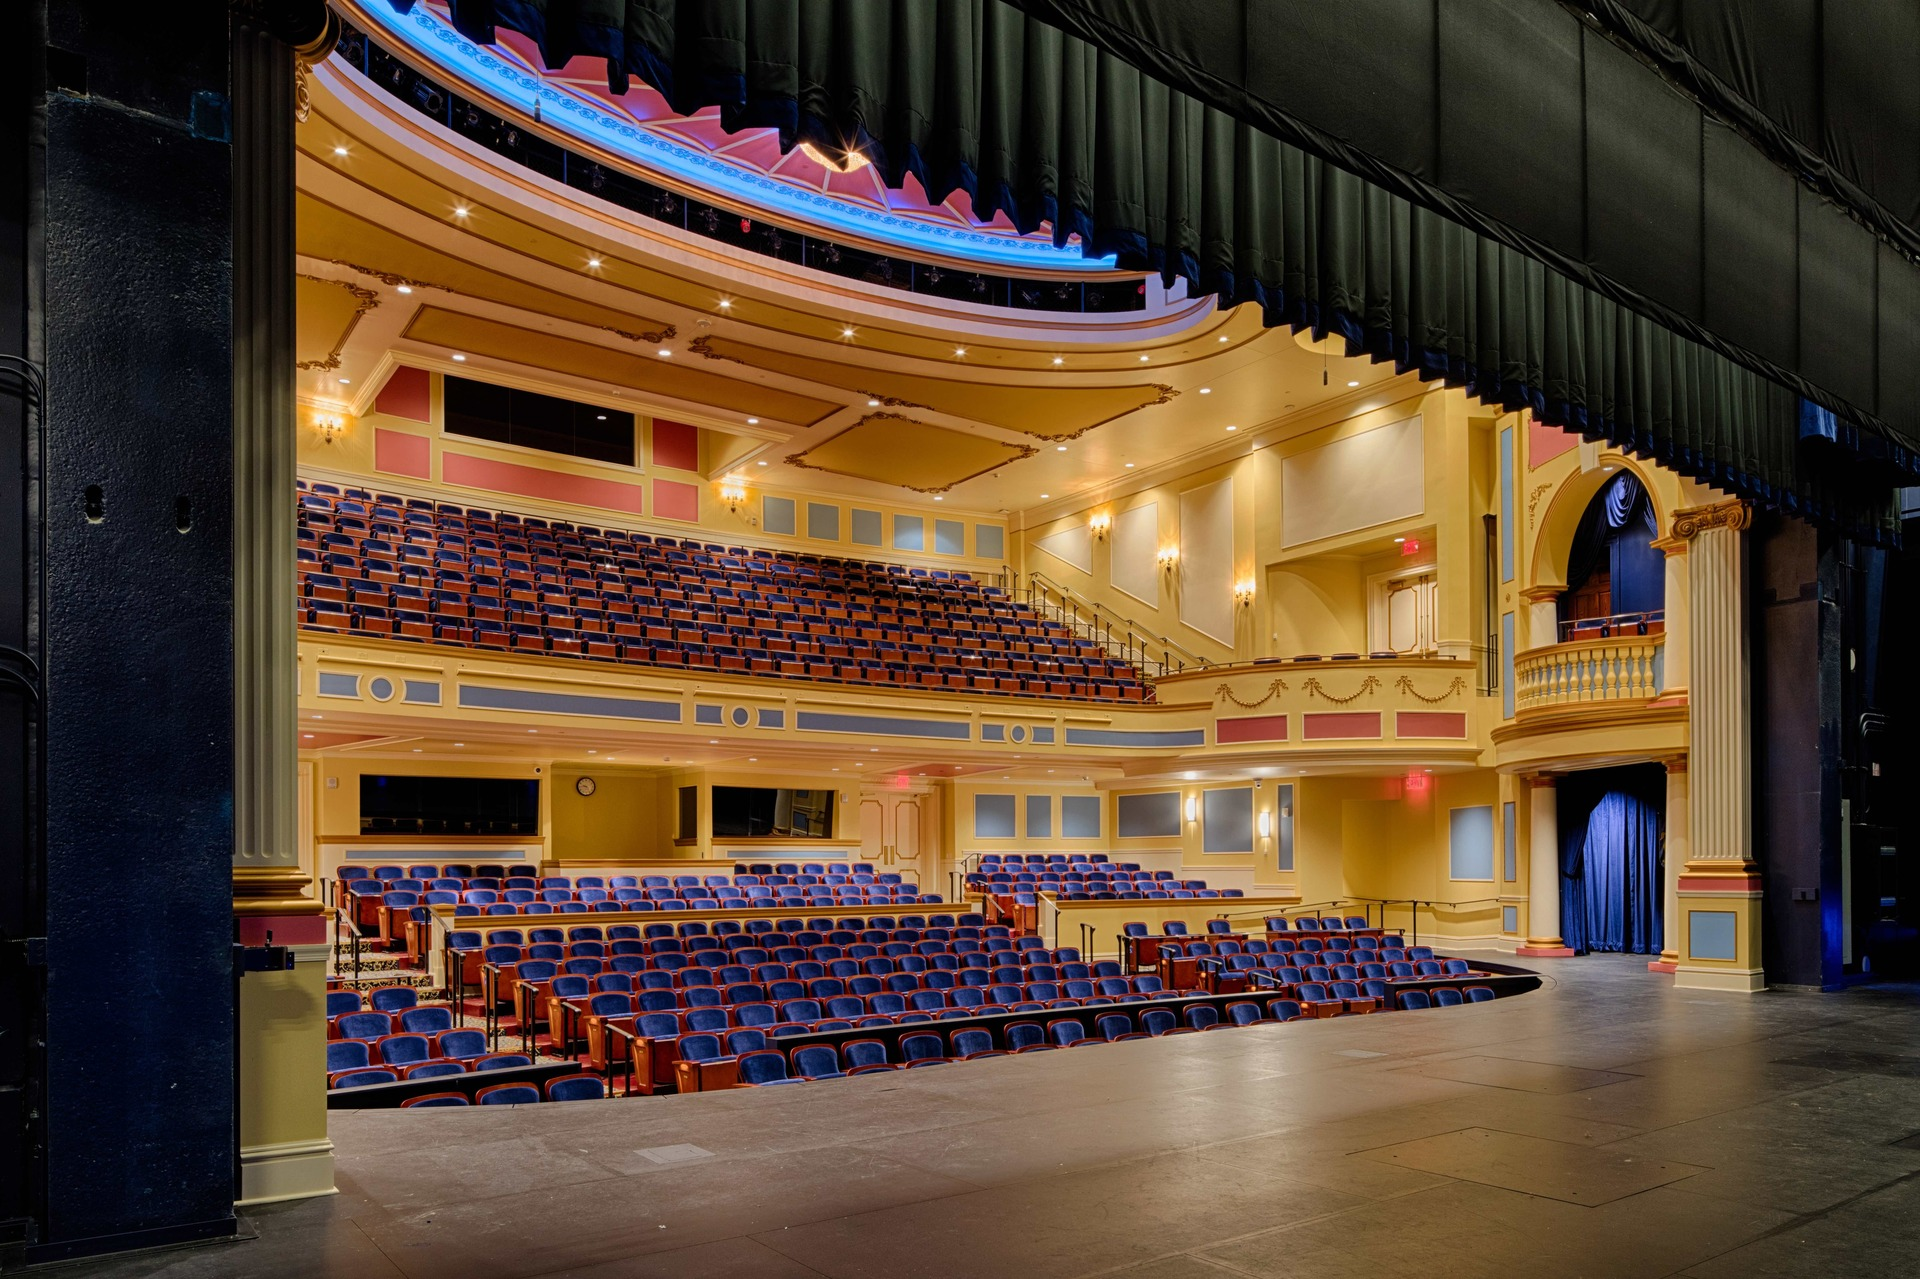 The gorgeous and luminous Theater Hall at the Providence Academy: Performing Arts Center in Plymouth, Minnesota, by Stahl.